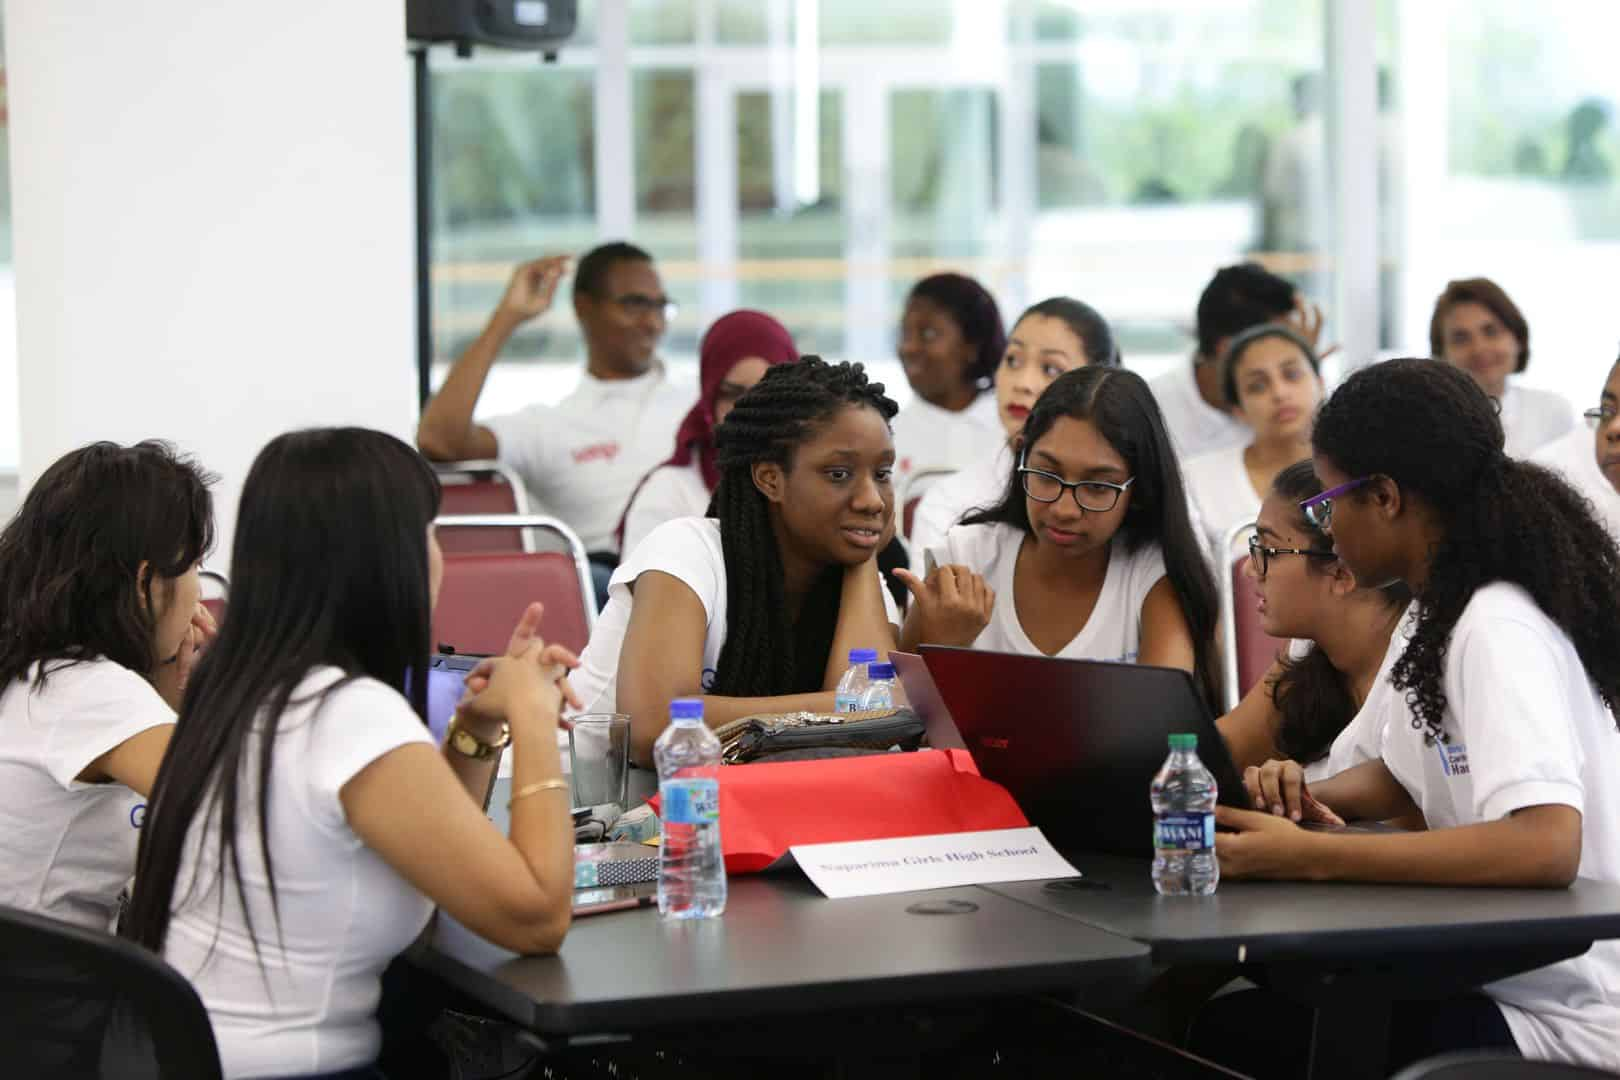 FLASHBACK: Girls from Trinidad and Tobago problem-solve during a tech event (Photo via ITU)